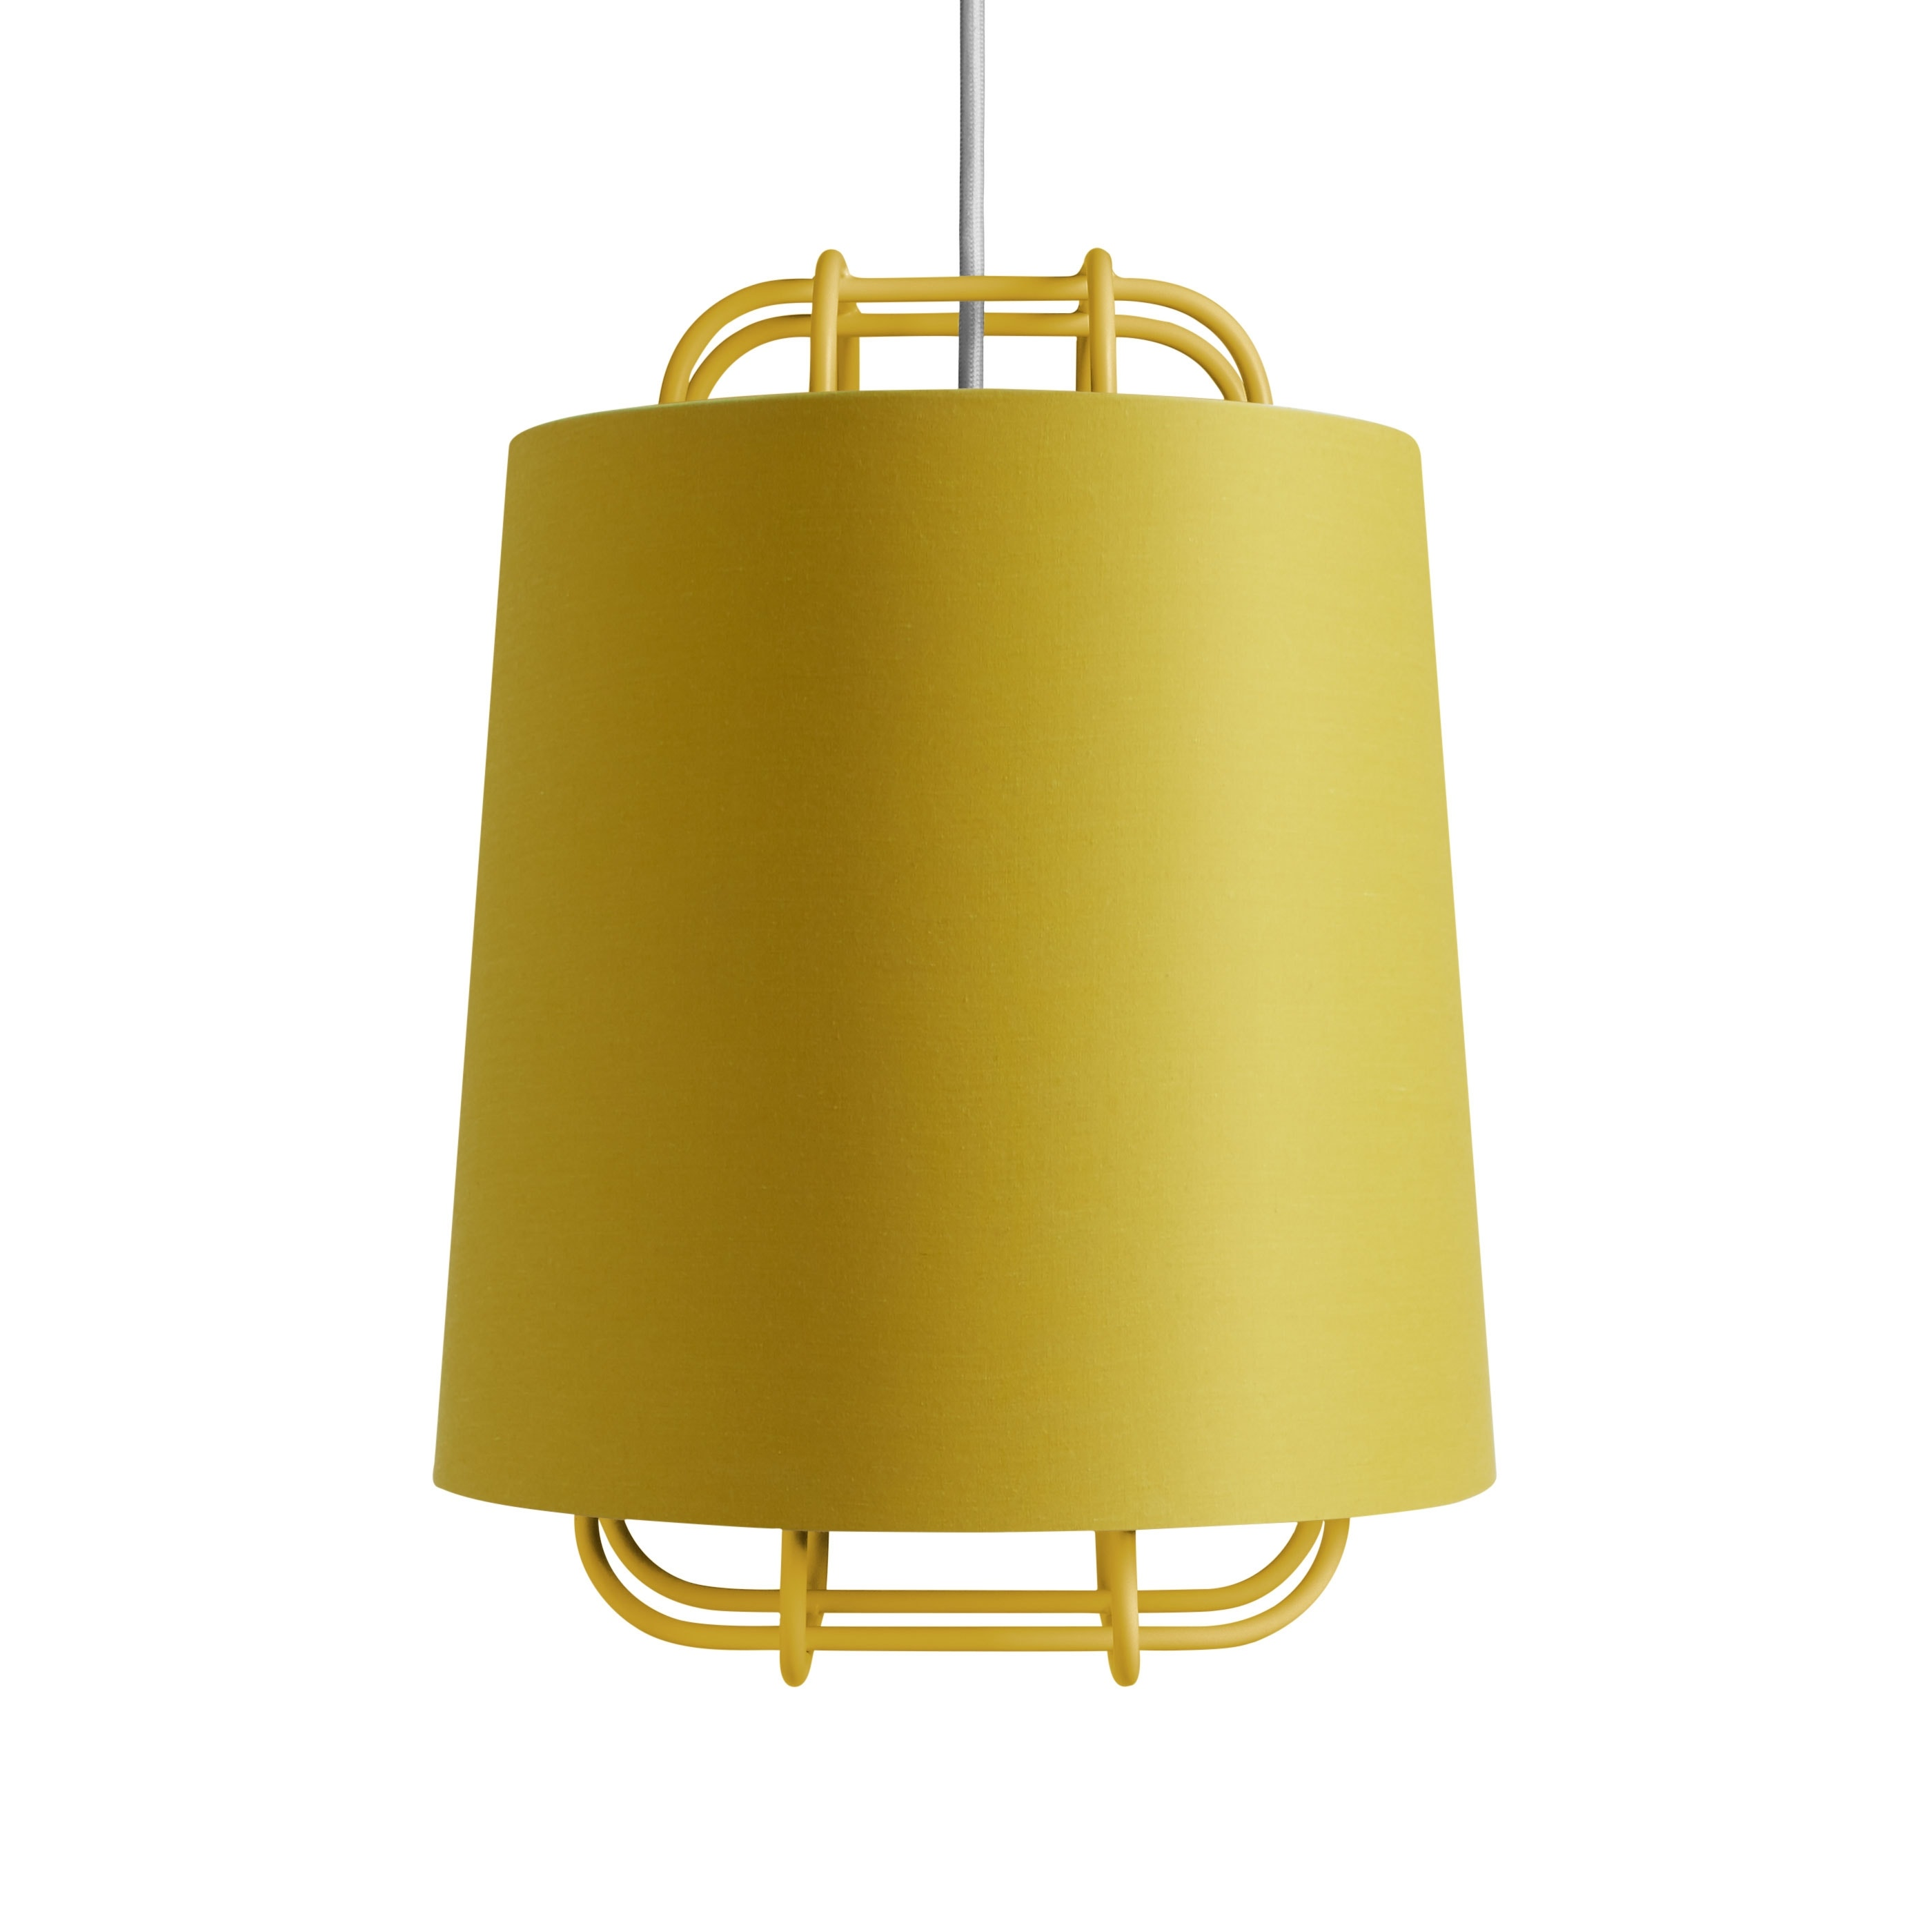 Perimeter small pendant light blu dot previous image perimeter small pendant light ochre ochre aloadofball Image collections